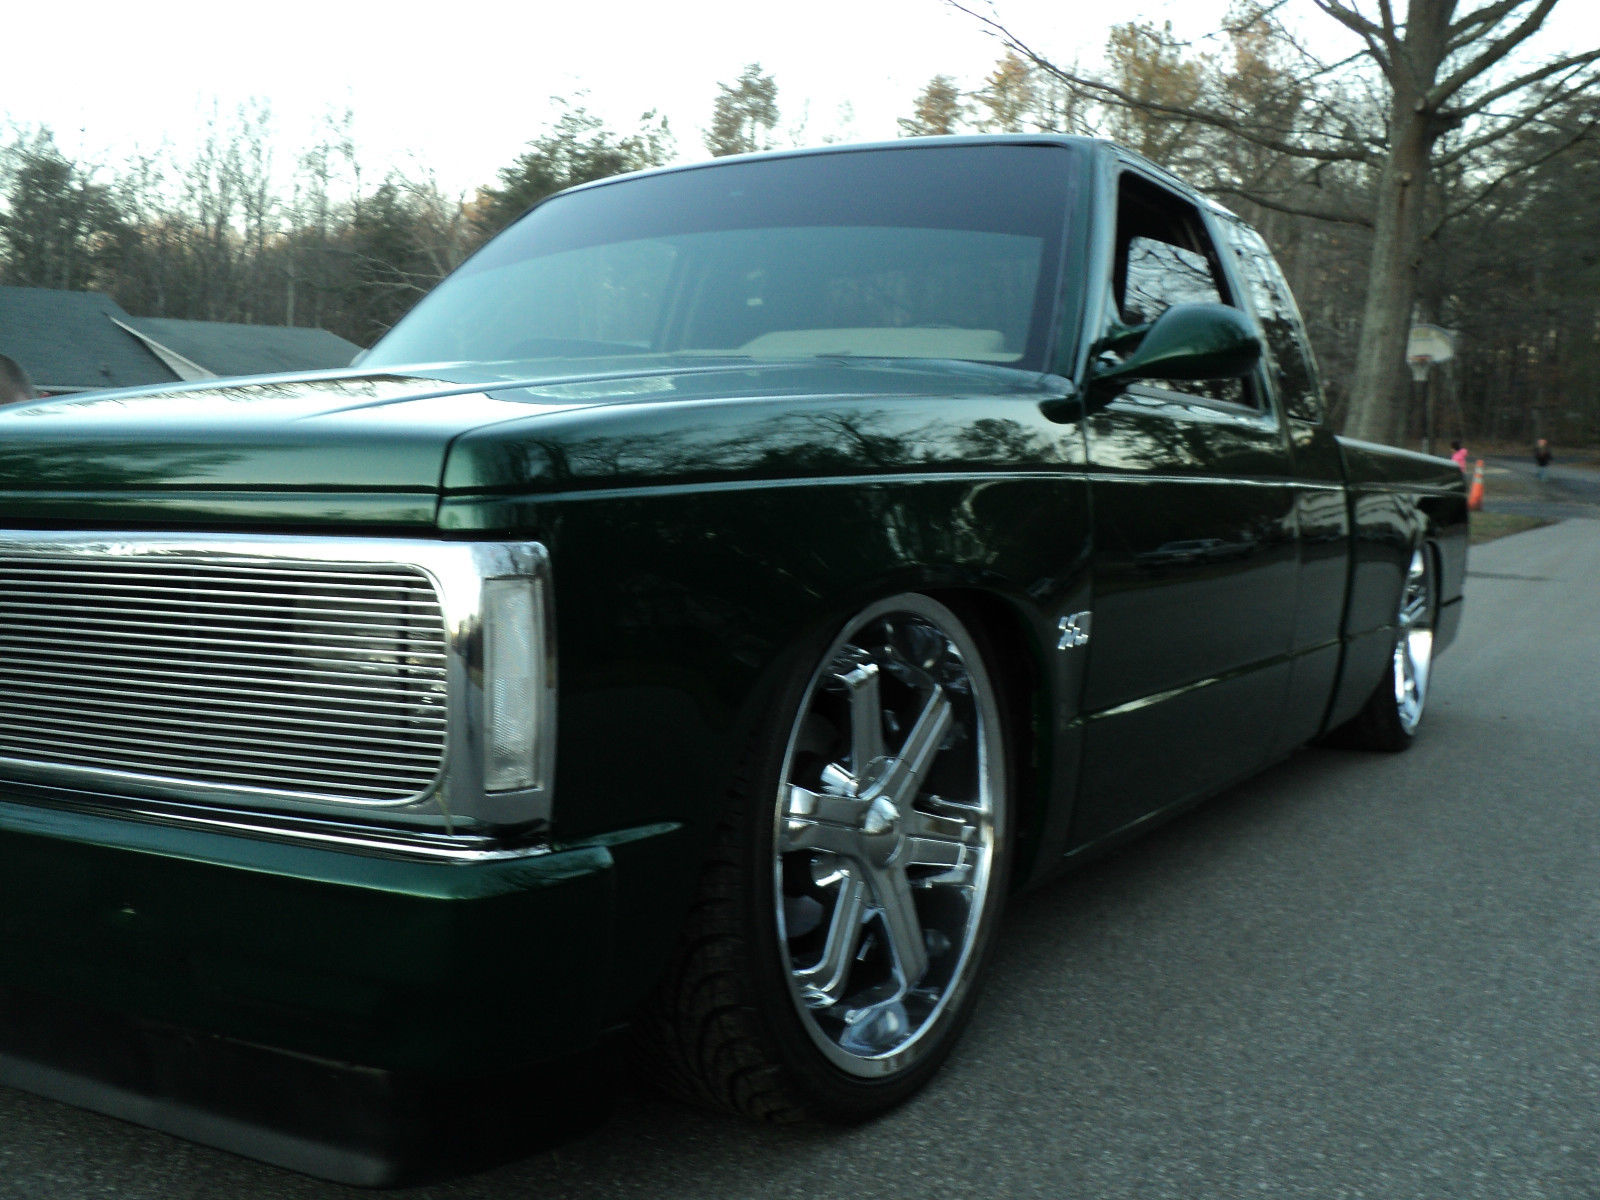 custom 91 chevy s10 organic kandy green airride for sale. Black Bedroom Furniture Sets. Home Design Ideas